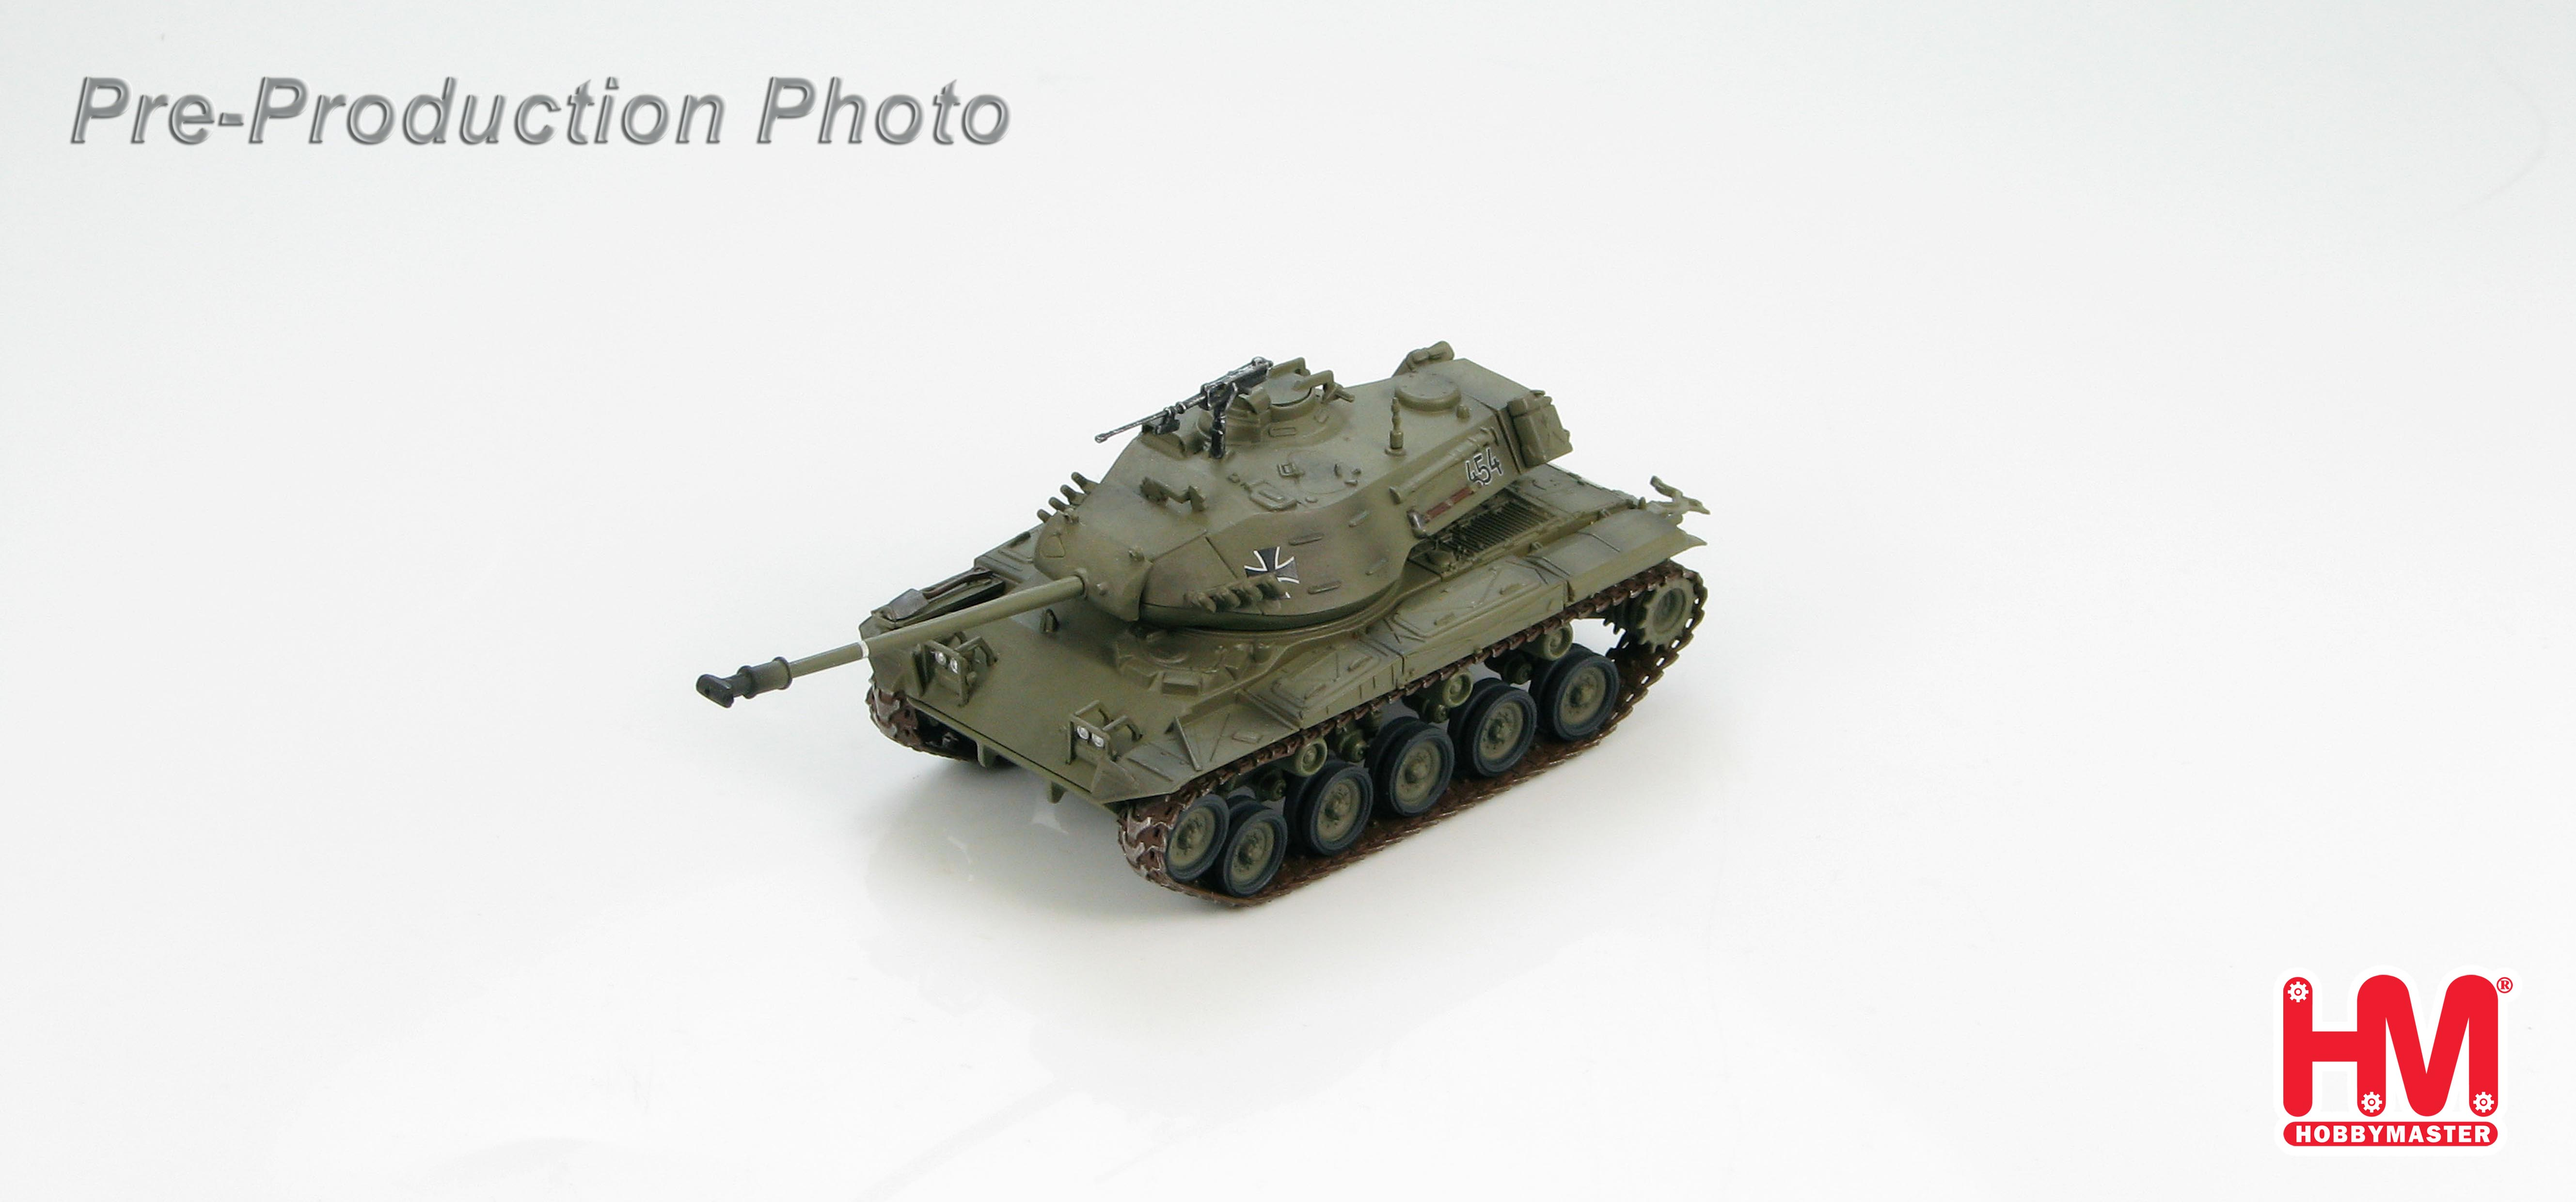 HG5305 M41G WALKER BULLDOG GERMAN ARMY 1950S 172 SCALE